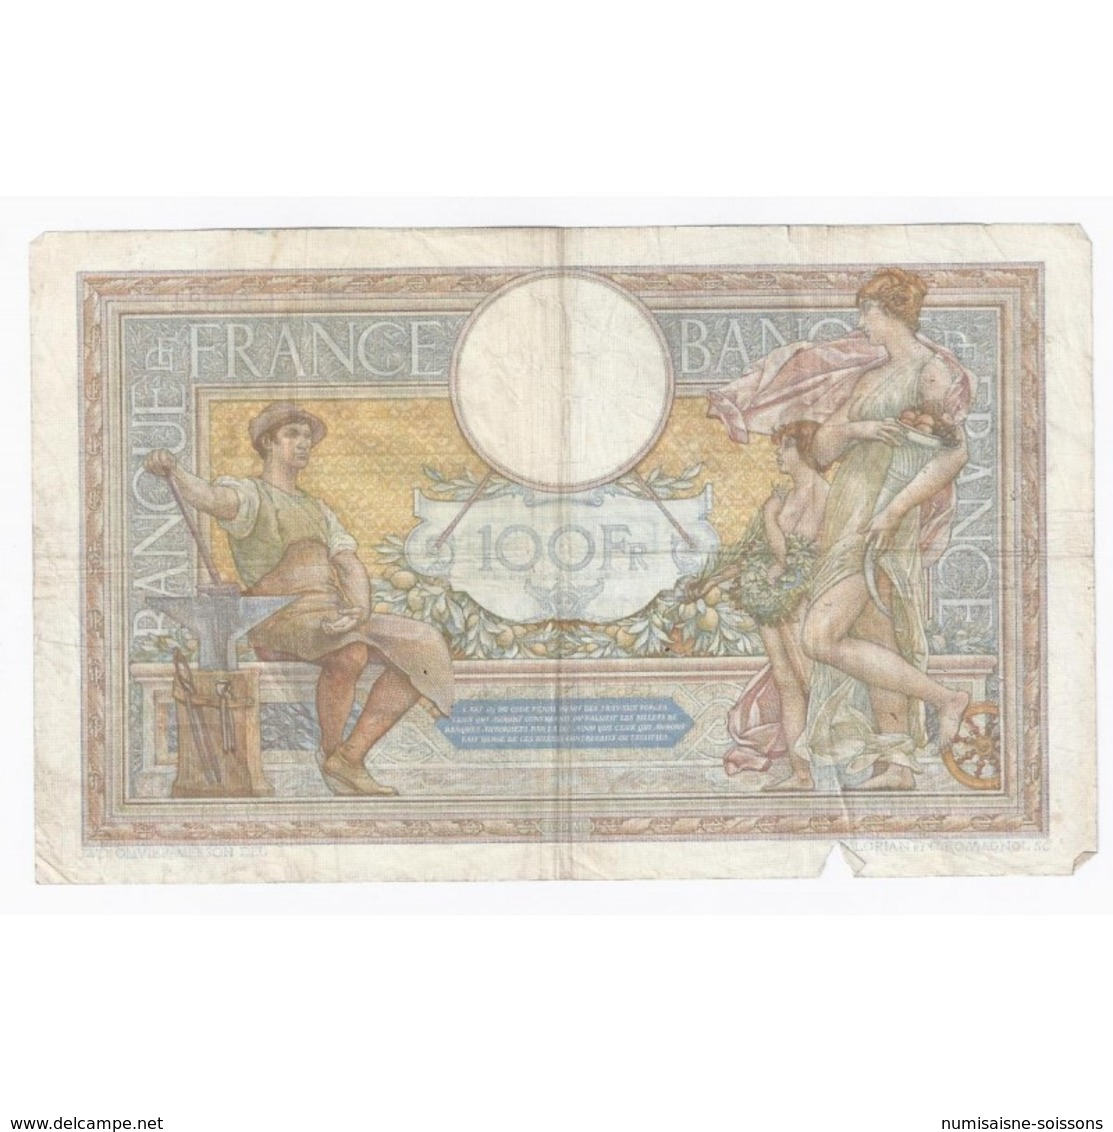 FAY 24/16 - 100 FRANCS Luc Olivier MERSON - 1937 - TRES BEAU - PICK 78 - - 1871-1952 Circulated During XXth